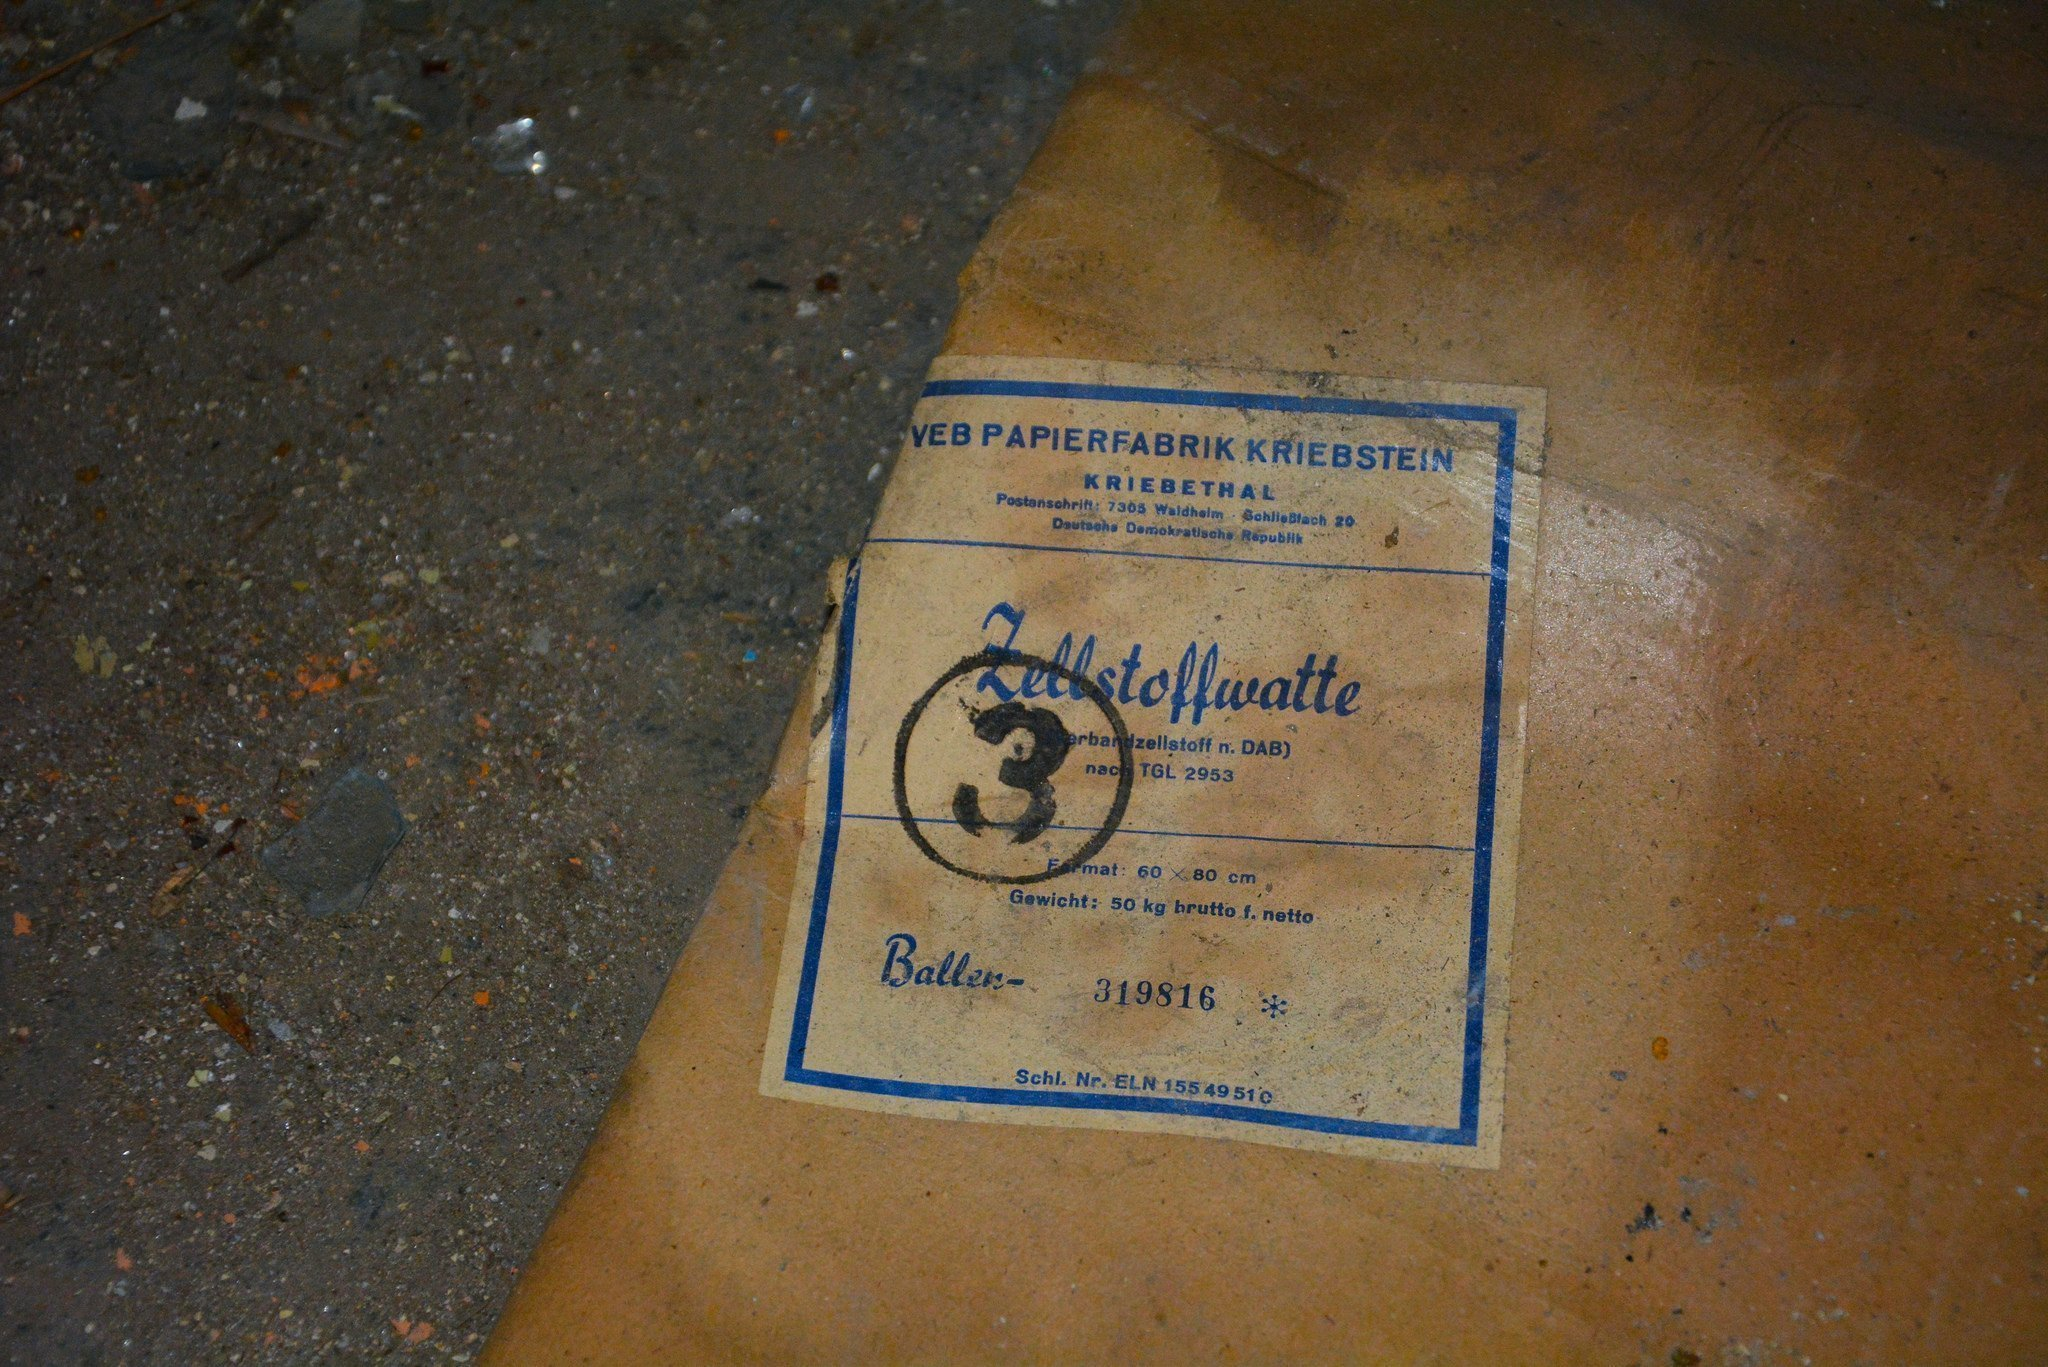 bandage packaging abandoned hospital berlin verlassenes krankenhaus lost places urbex ruins germany